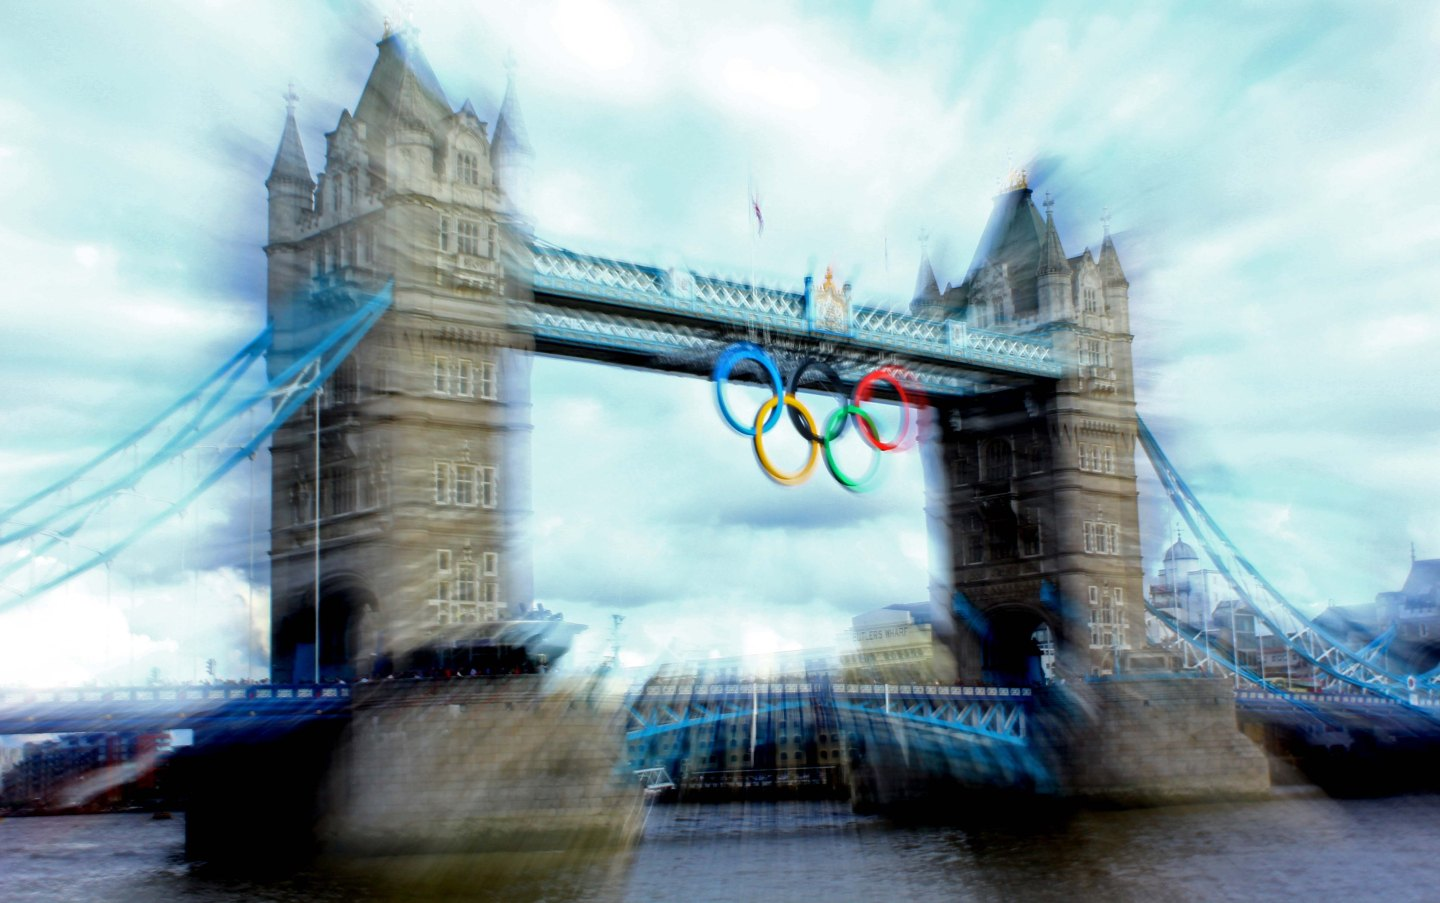 London During The Olympics – My Thoughts